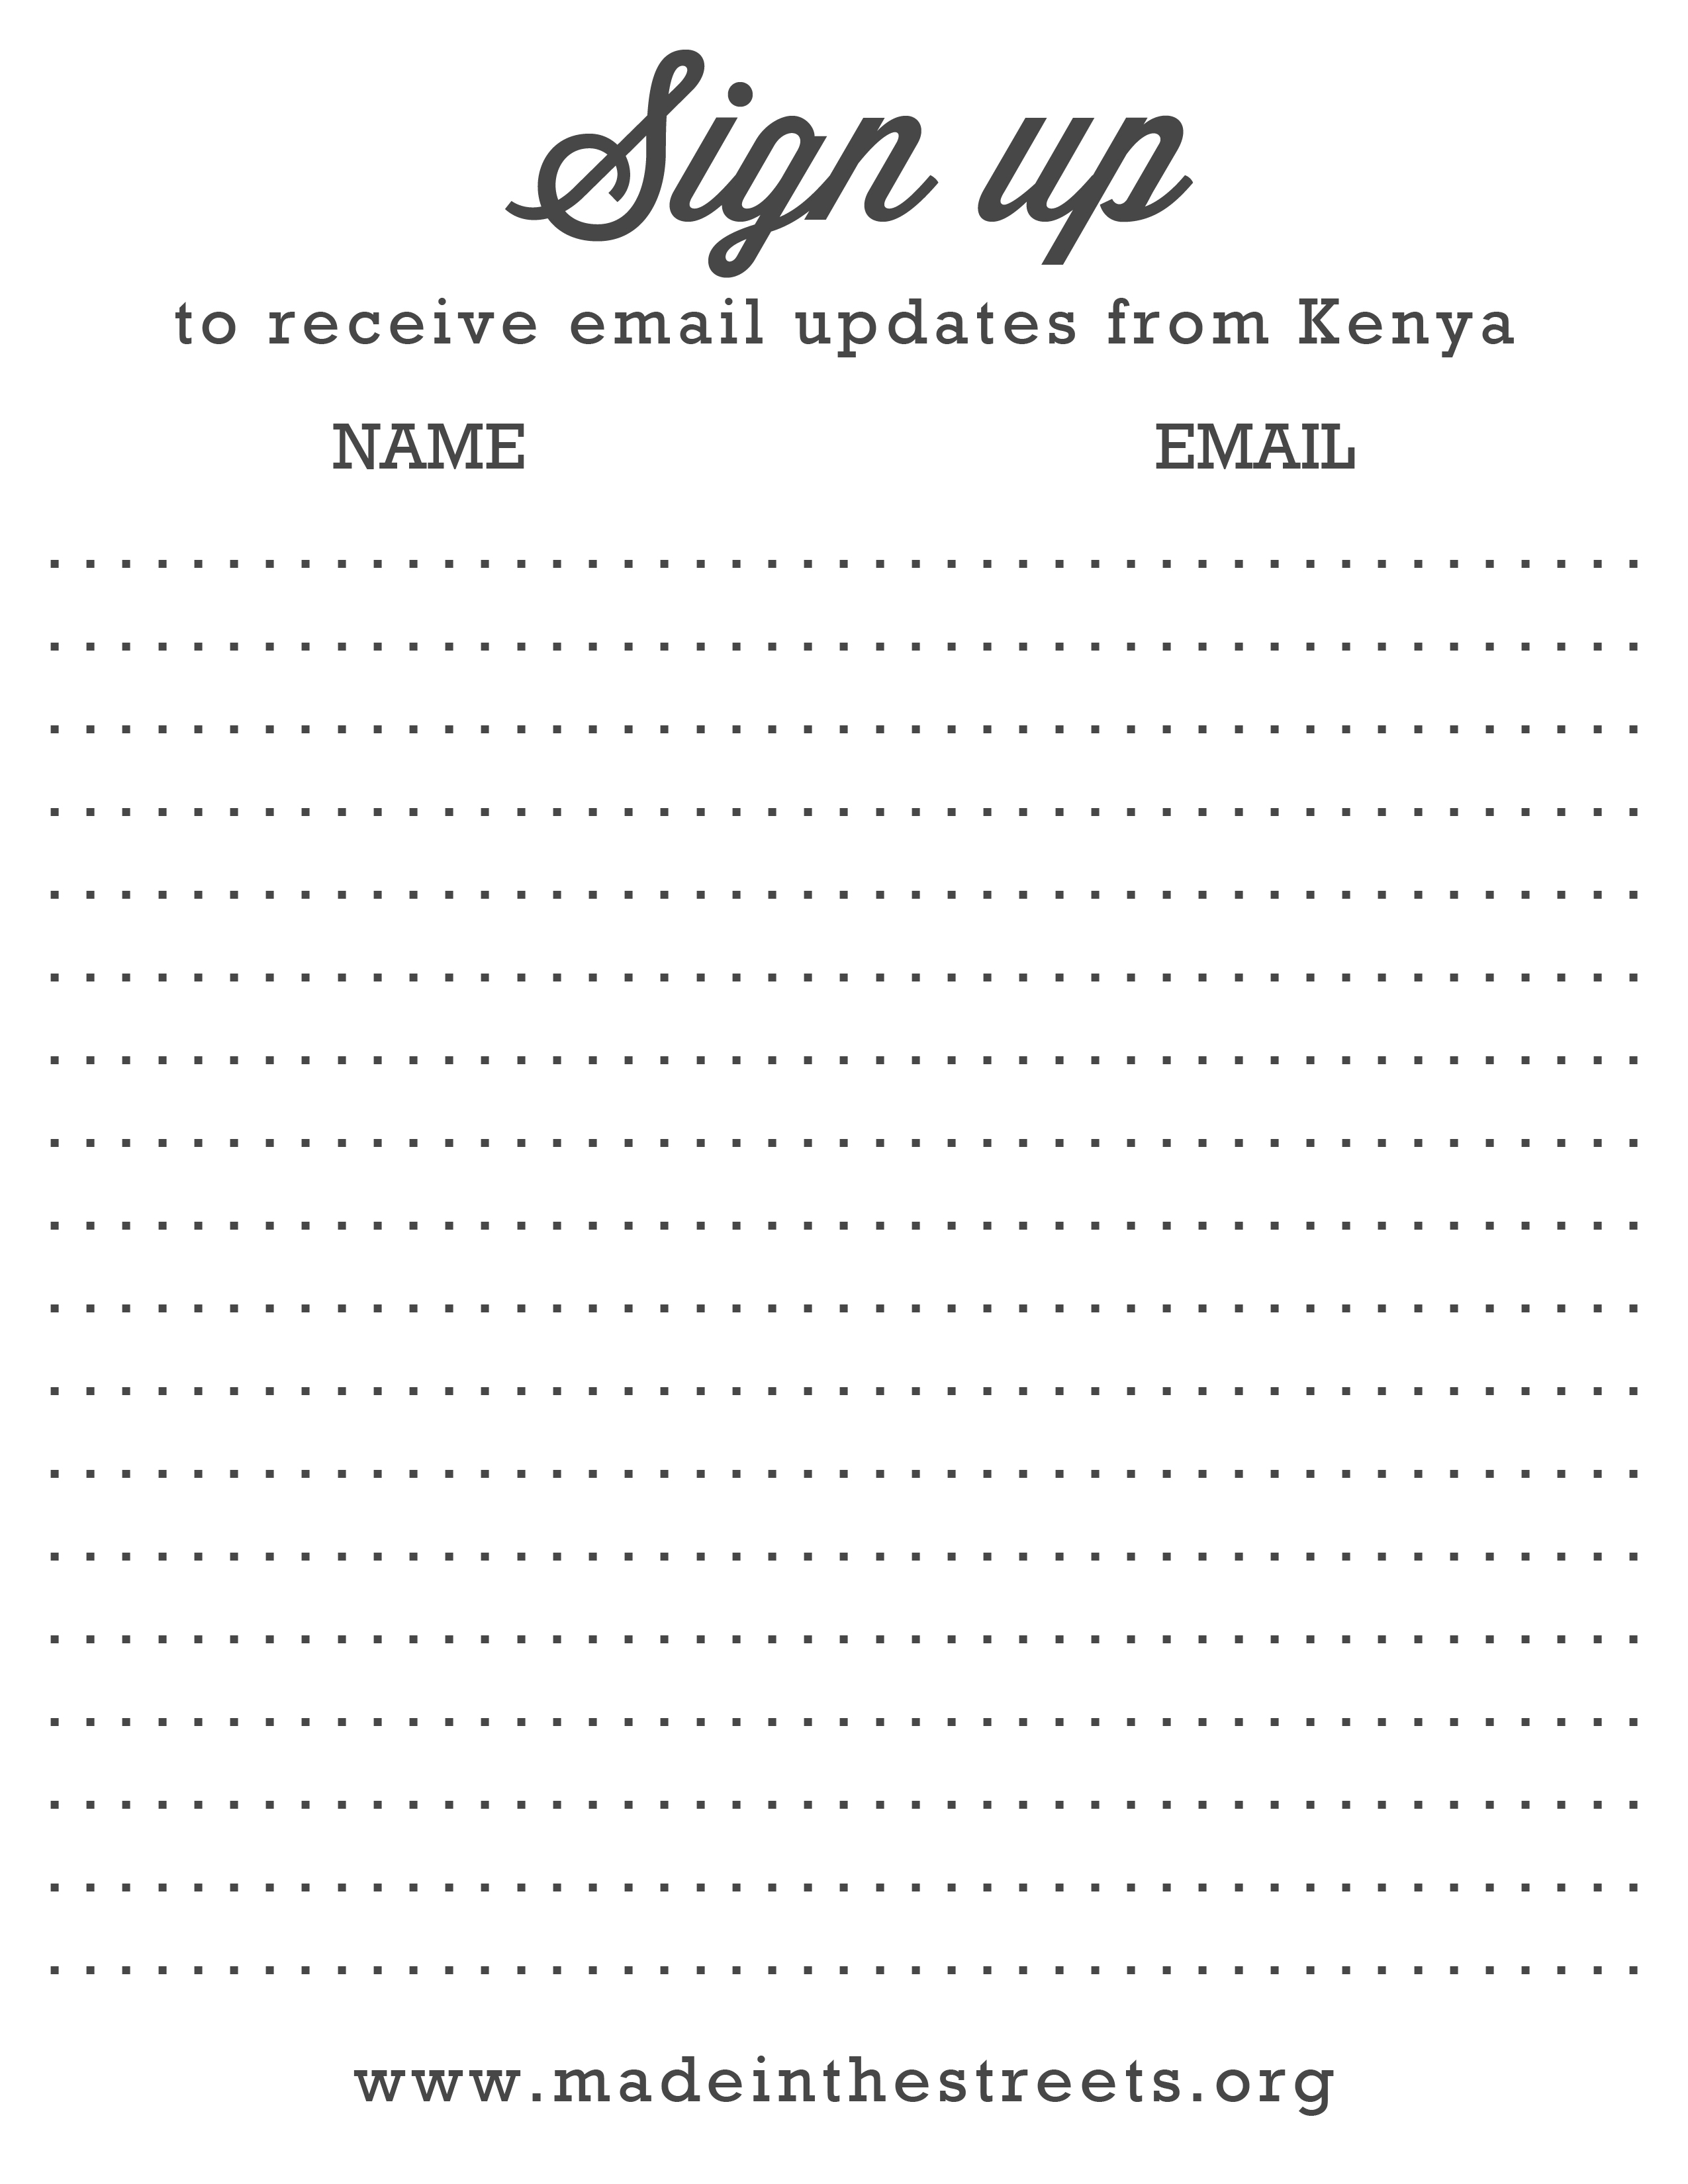 Email Signup Sheet Template Charlotte Clergy Coalition